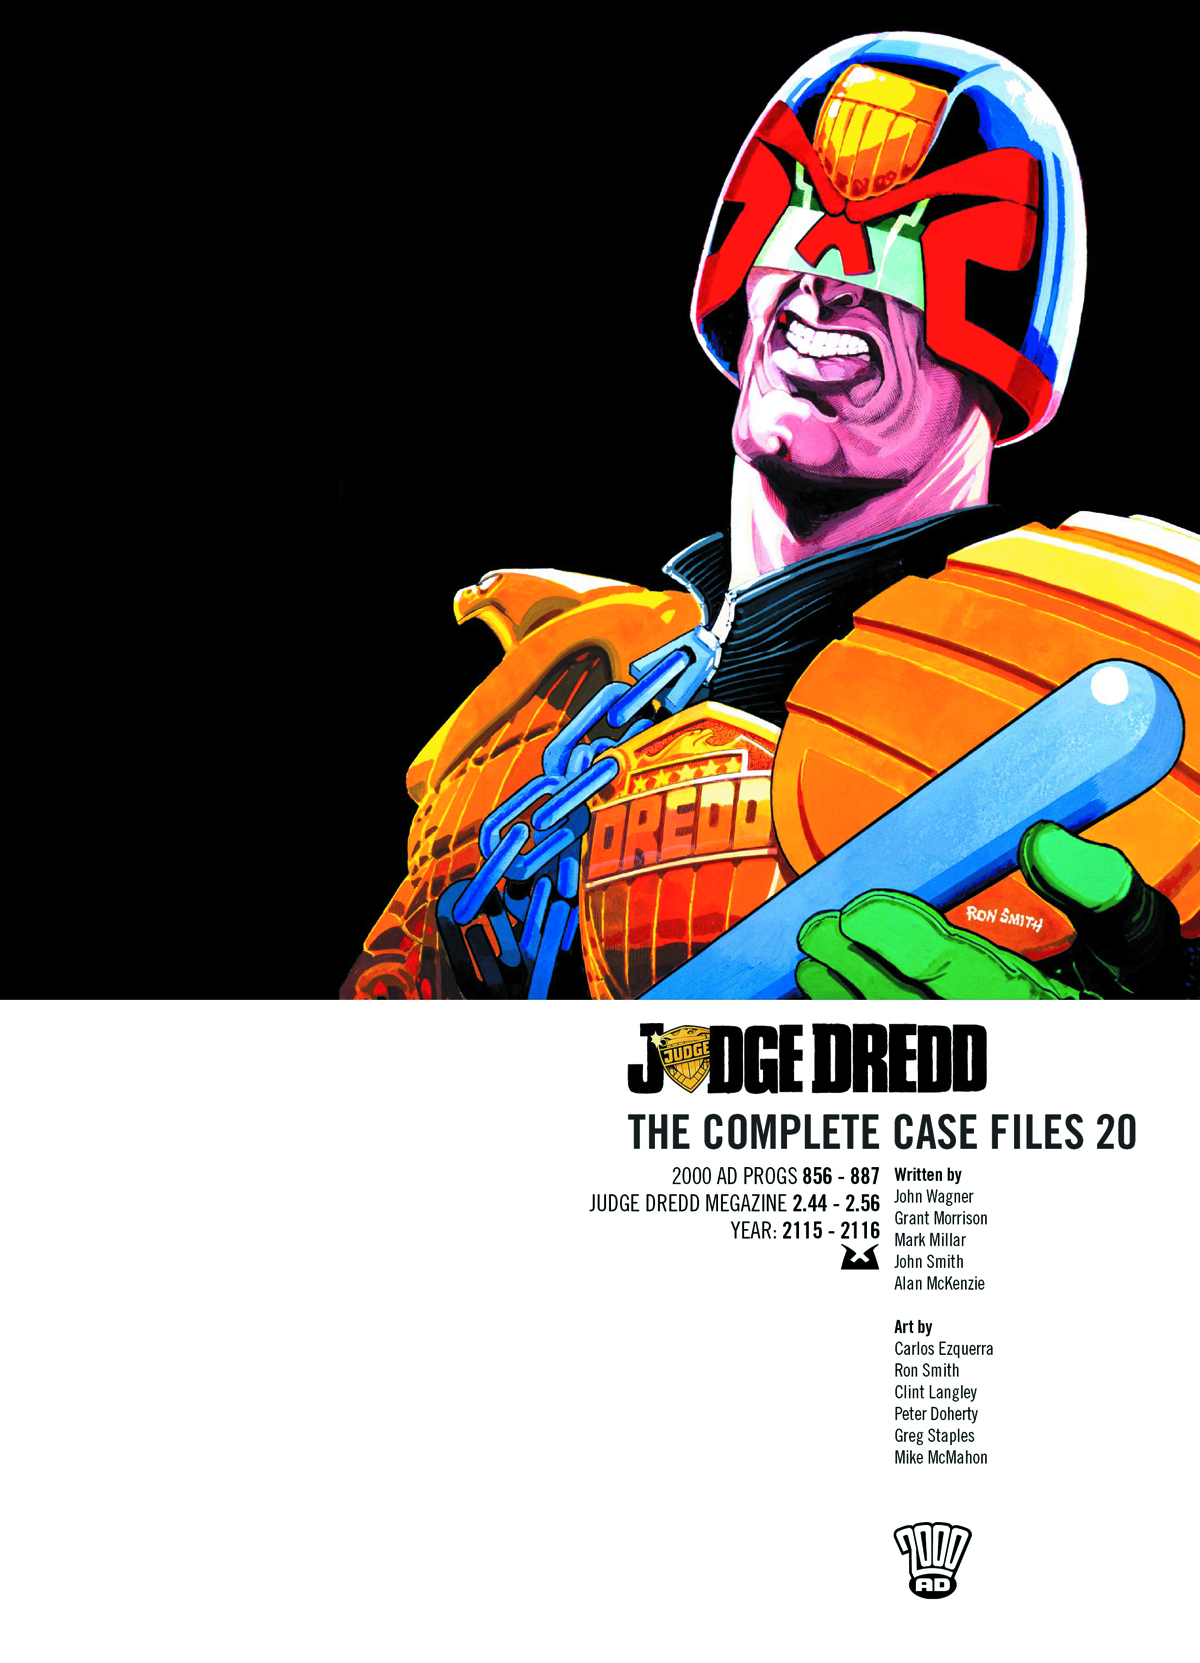 JUDGE DREDD COMP CASE FILES TP VOL 20